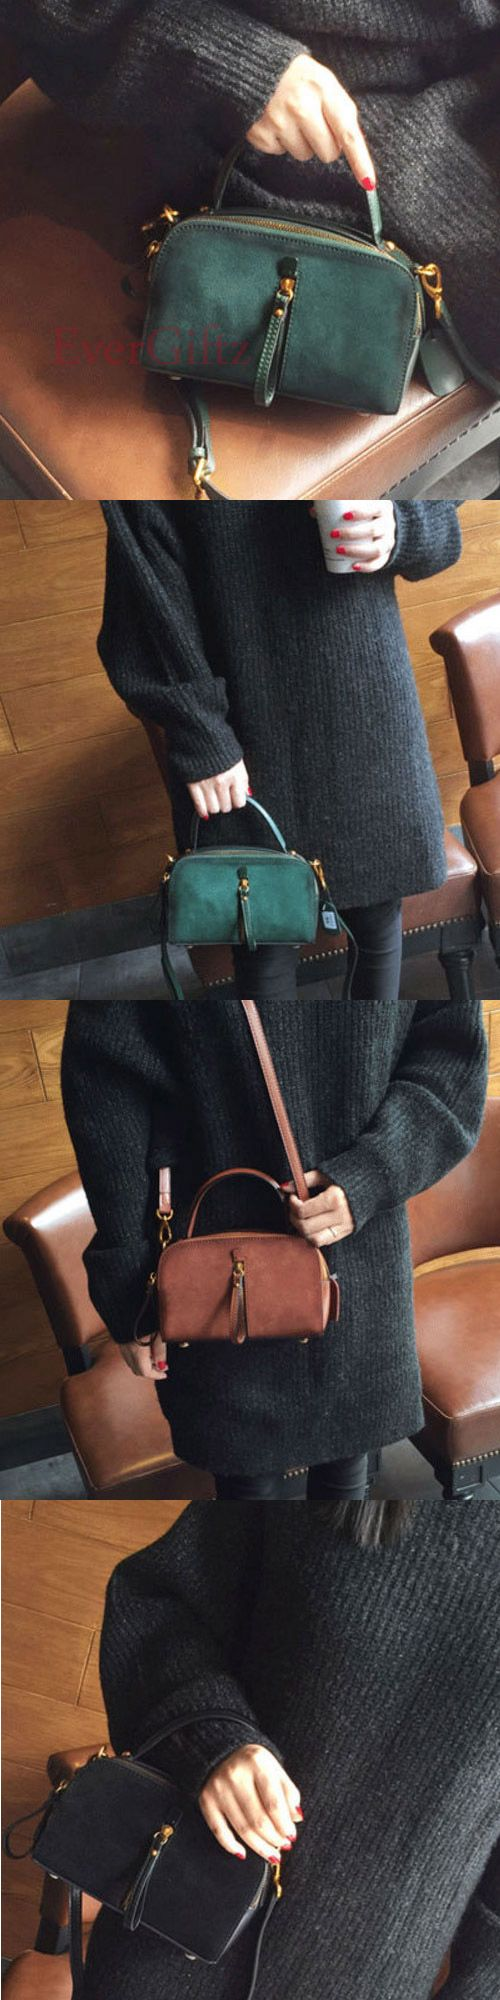 Genuine leather vintage women handbag shoulder bag crossbody bag https://twitter.com/gaefaefagaea4/status/895099552956416000